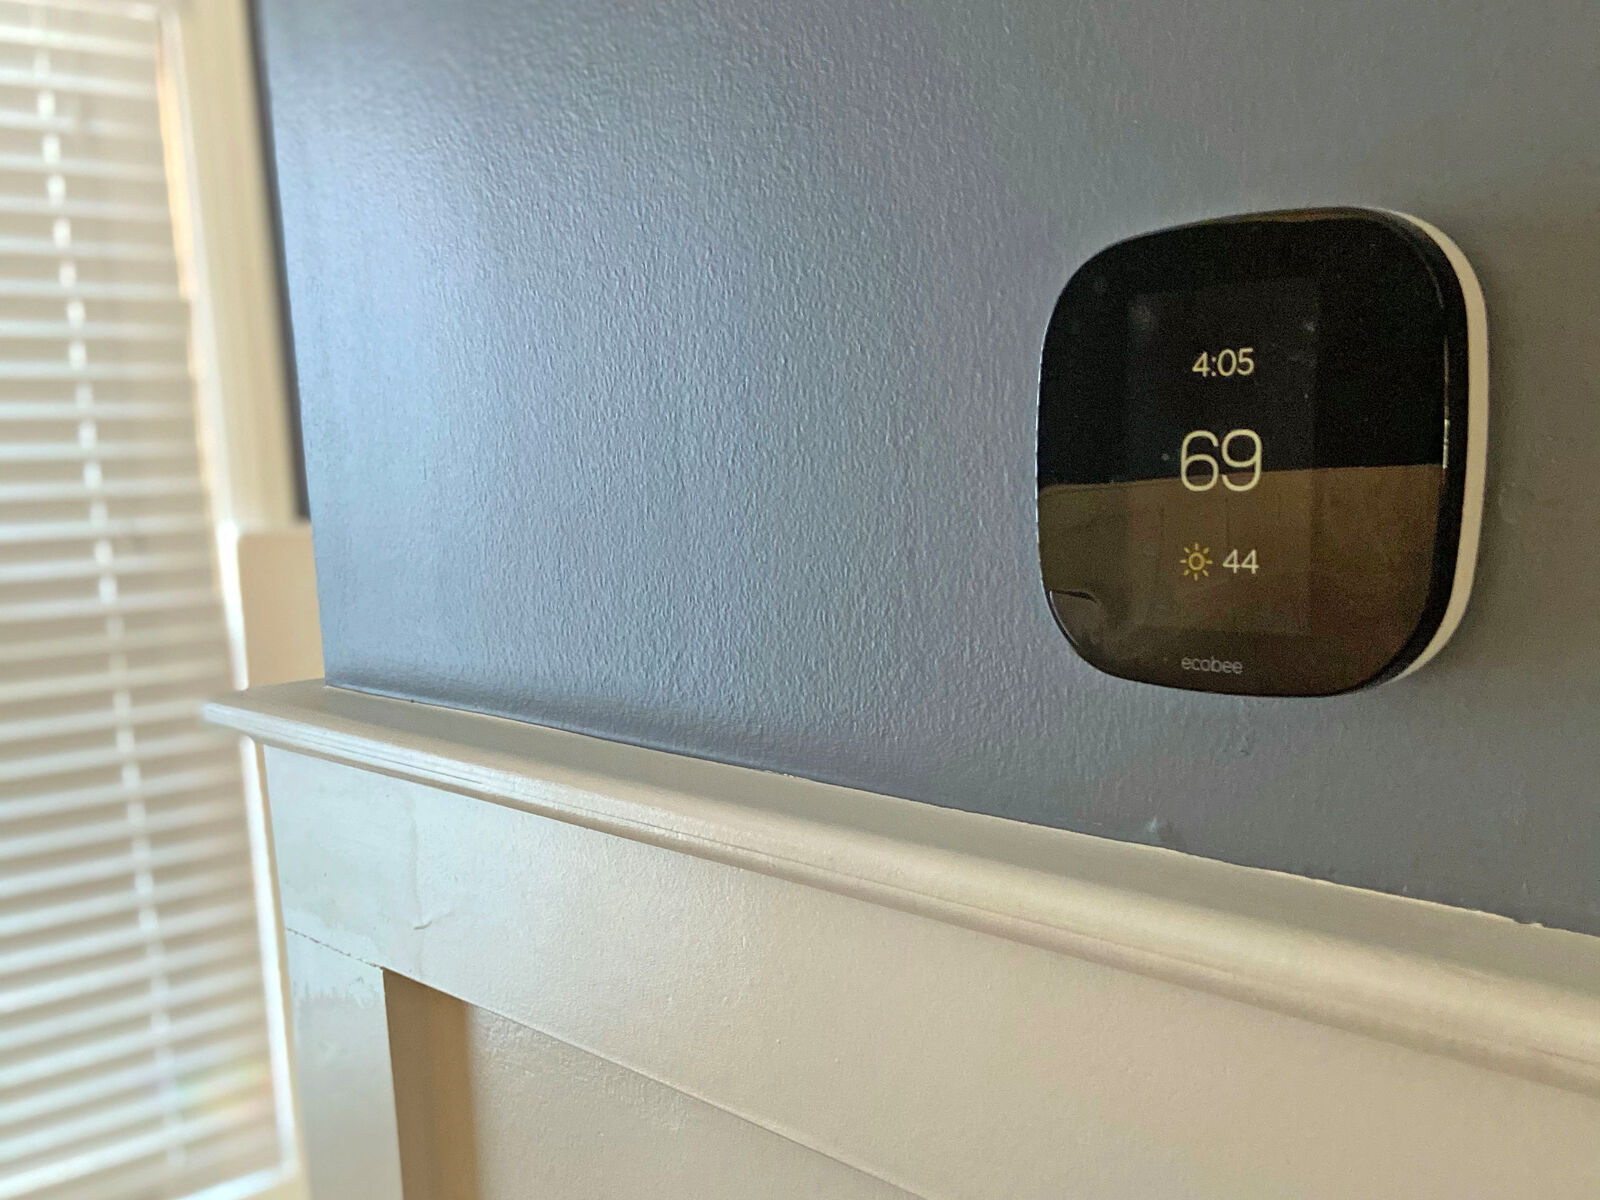 EcoBee thermostat on modern wall